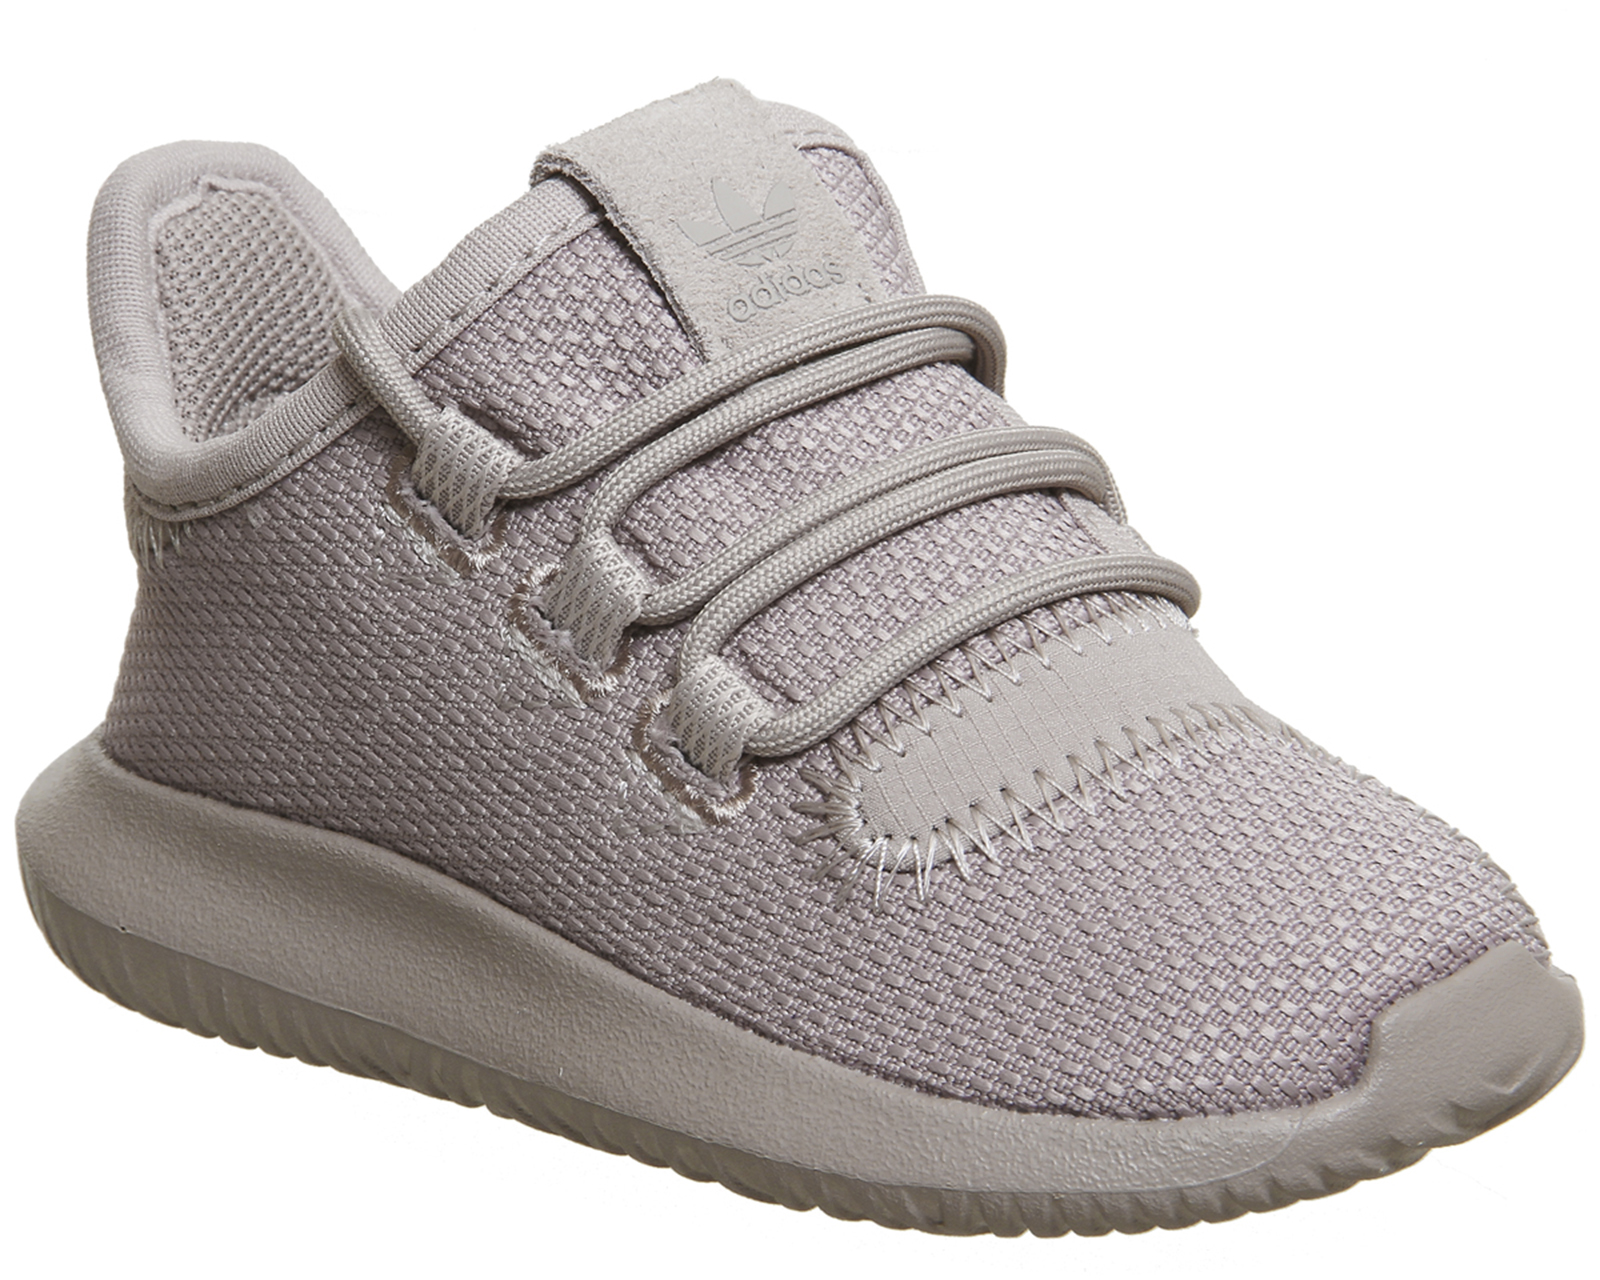 b4a955cf48e9 Sentinel Kids Adidas Tubular Shadow Infant Trainers Vapour Grey Kids